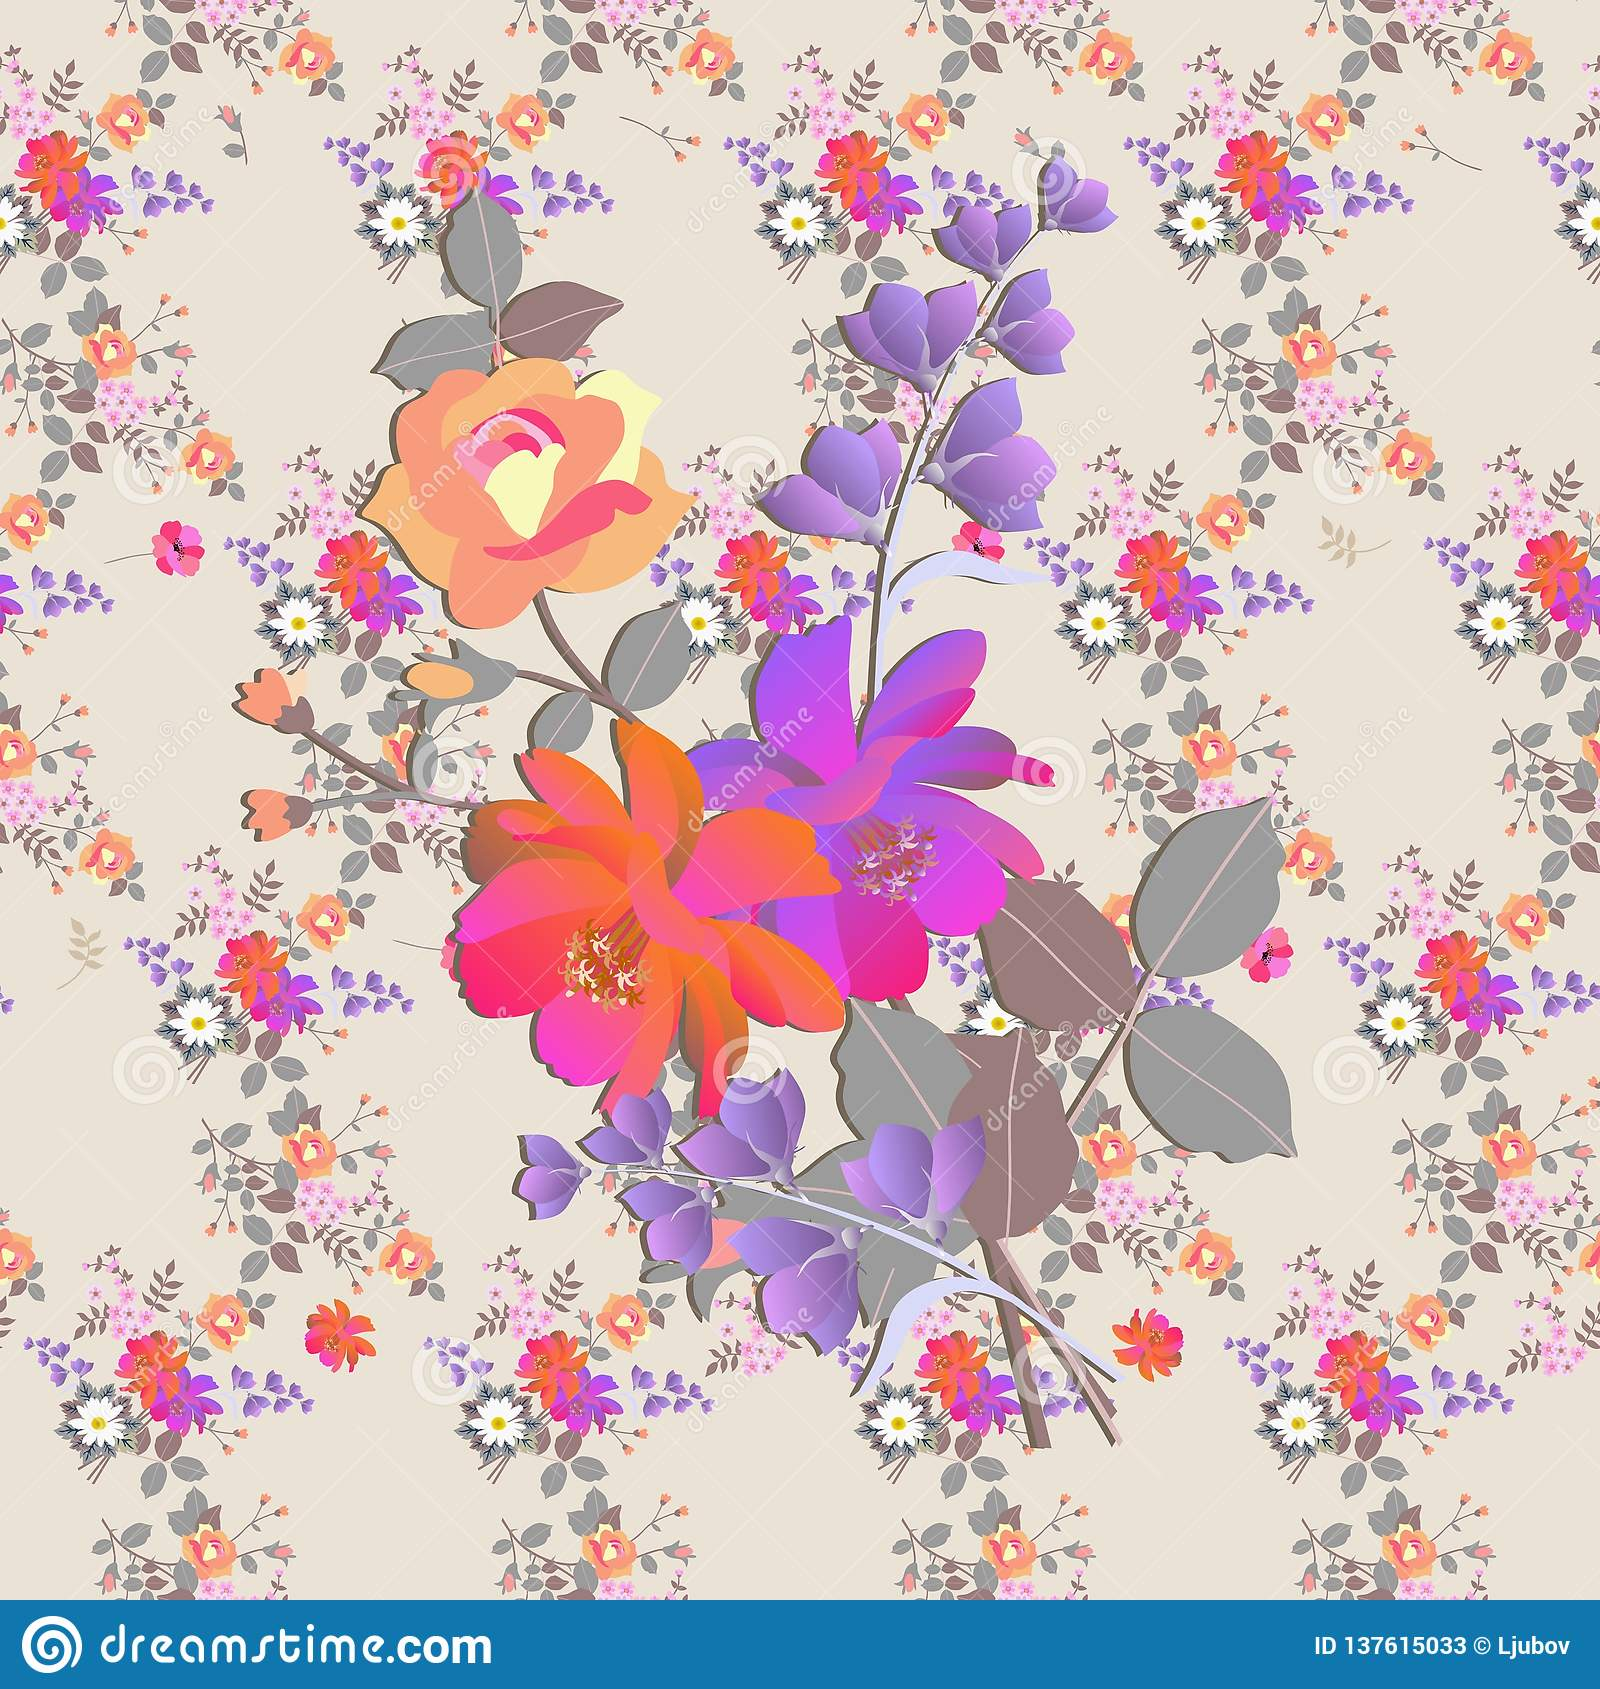 Seamless floral romantic pattern. Bouquets of roses, bell and cosmos flowers in watercolor style. Print for fabric